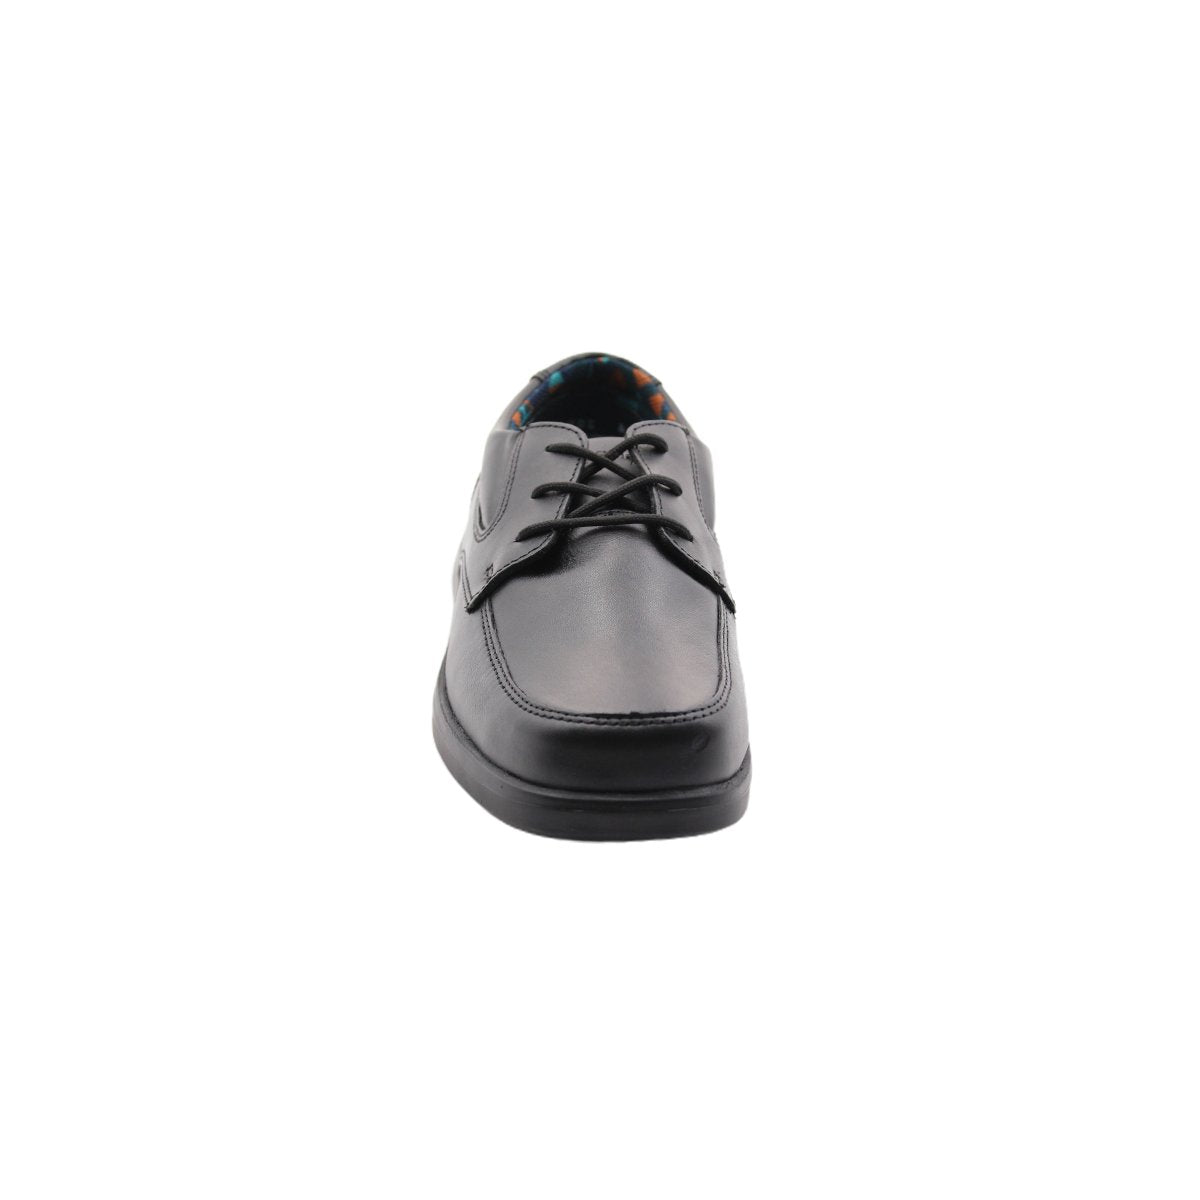 zapato escolar luka ox hp - color negro, 29995, all day comfort, calzado, cuero, fase 5, hush puppies, negro, nino, ninos, precio regular comprar, en linea, online, delivery, costa rica, zapatos